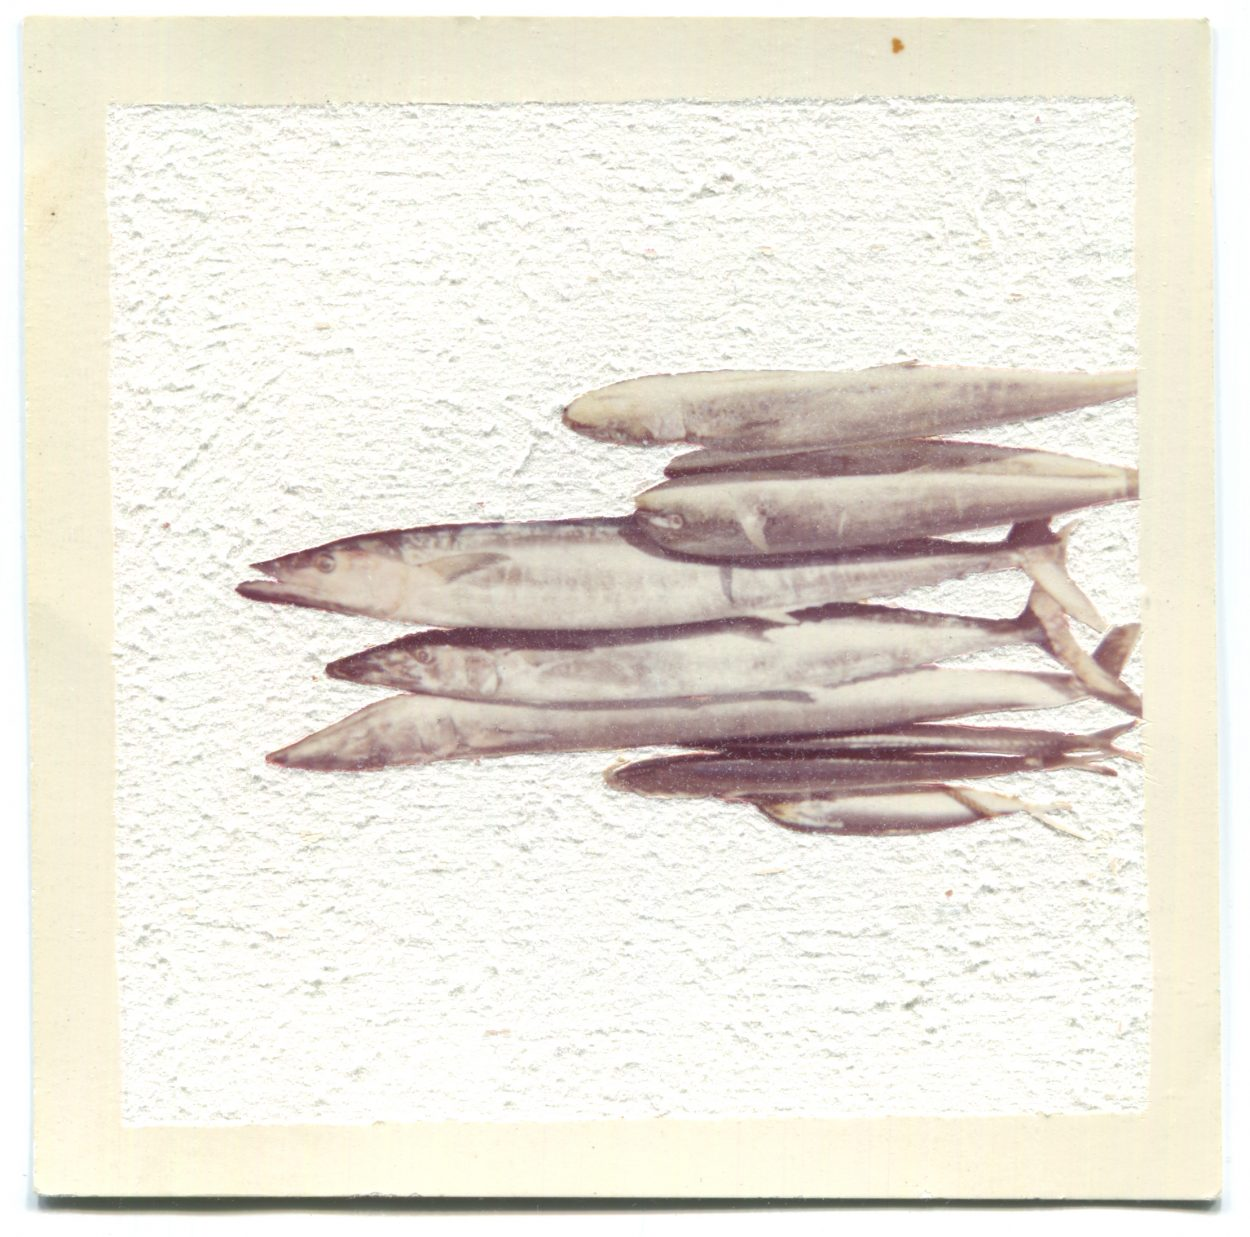 Fish in an altered found photograph